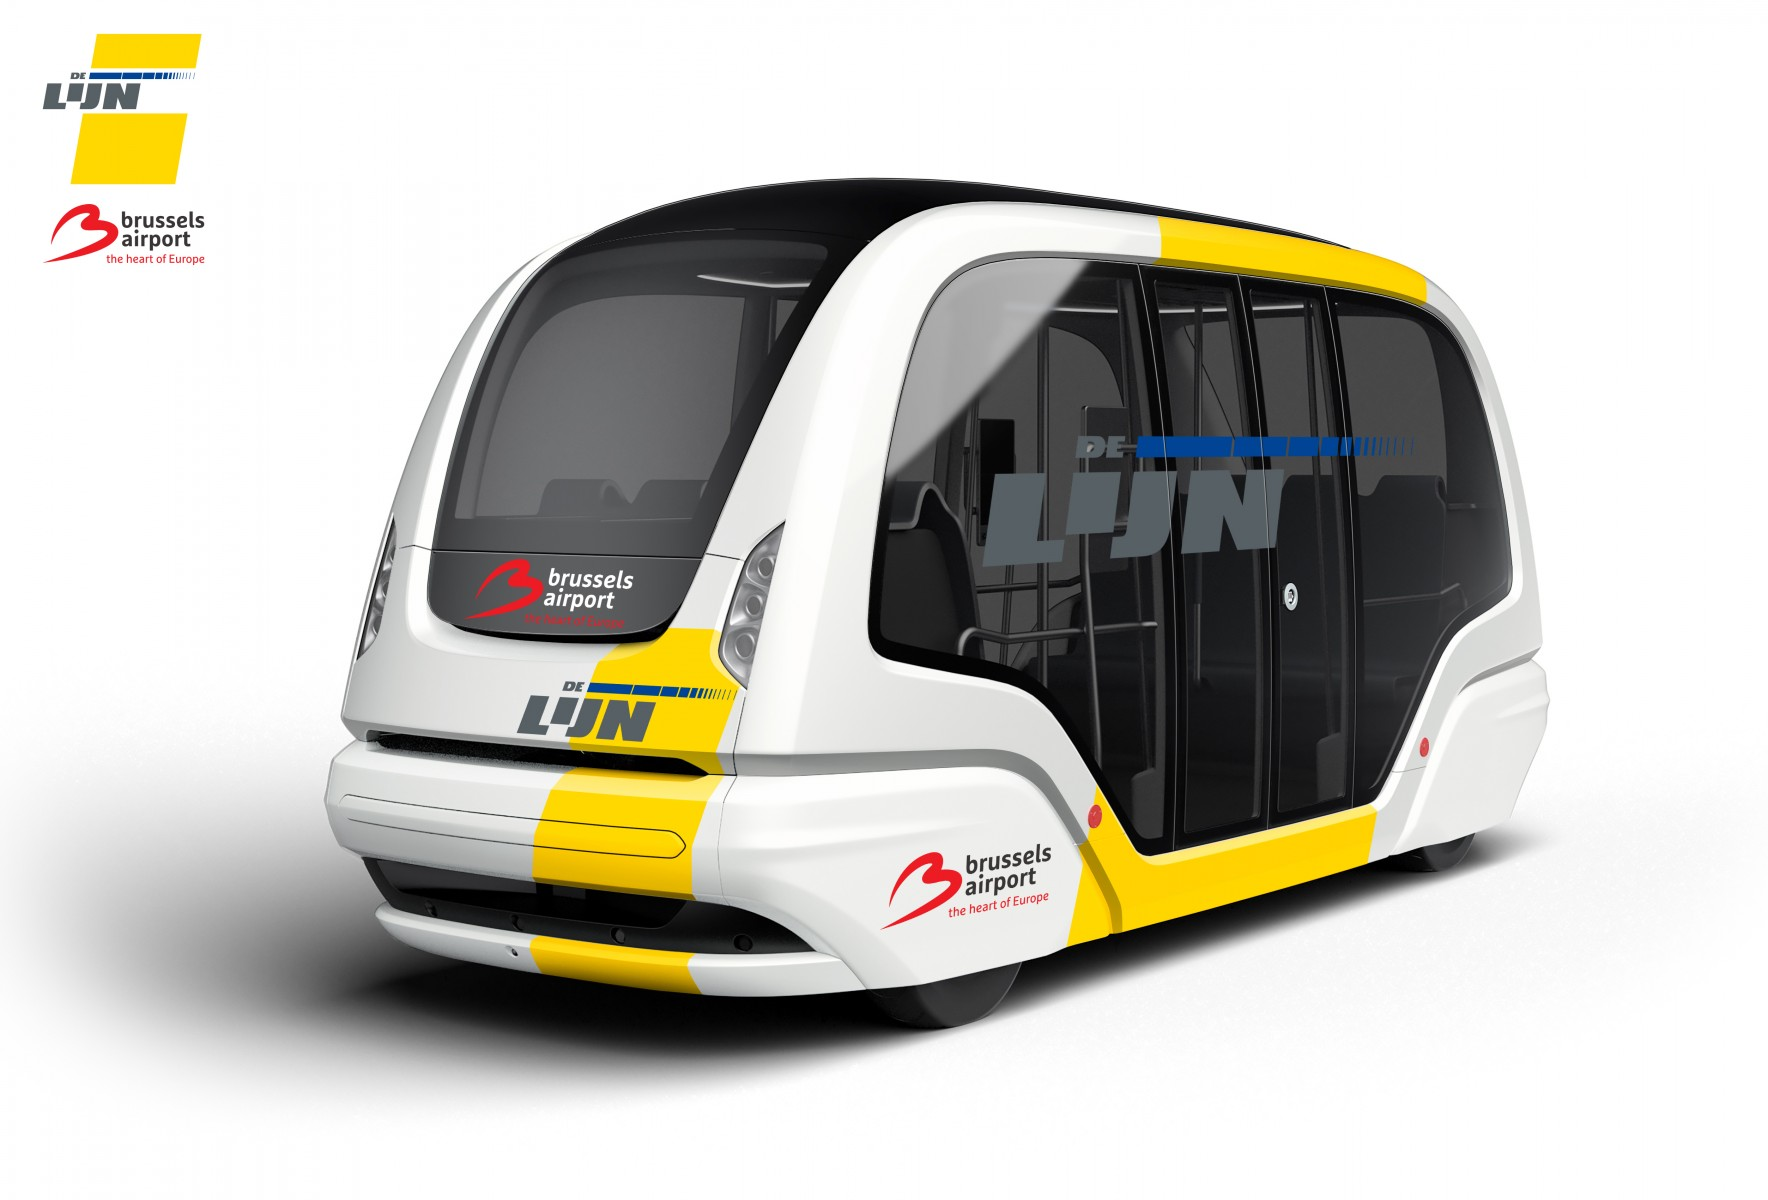 d9af1ed11a Brussels Airport and De Lijn start pilot project with self-driving bus